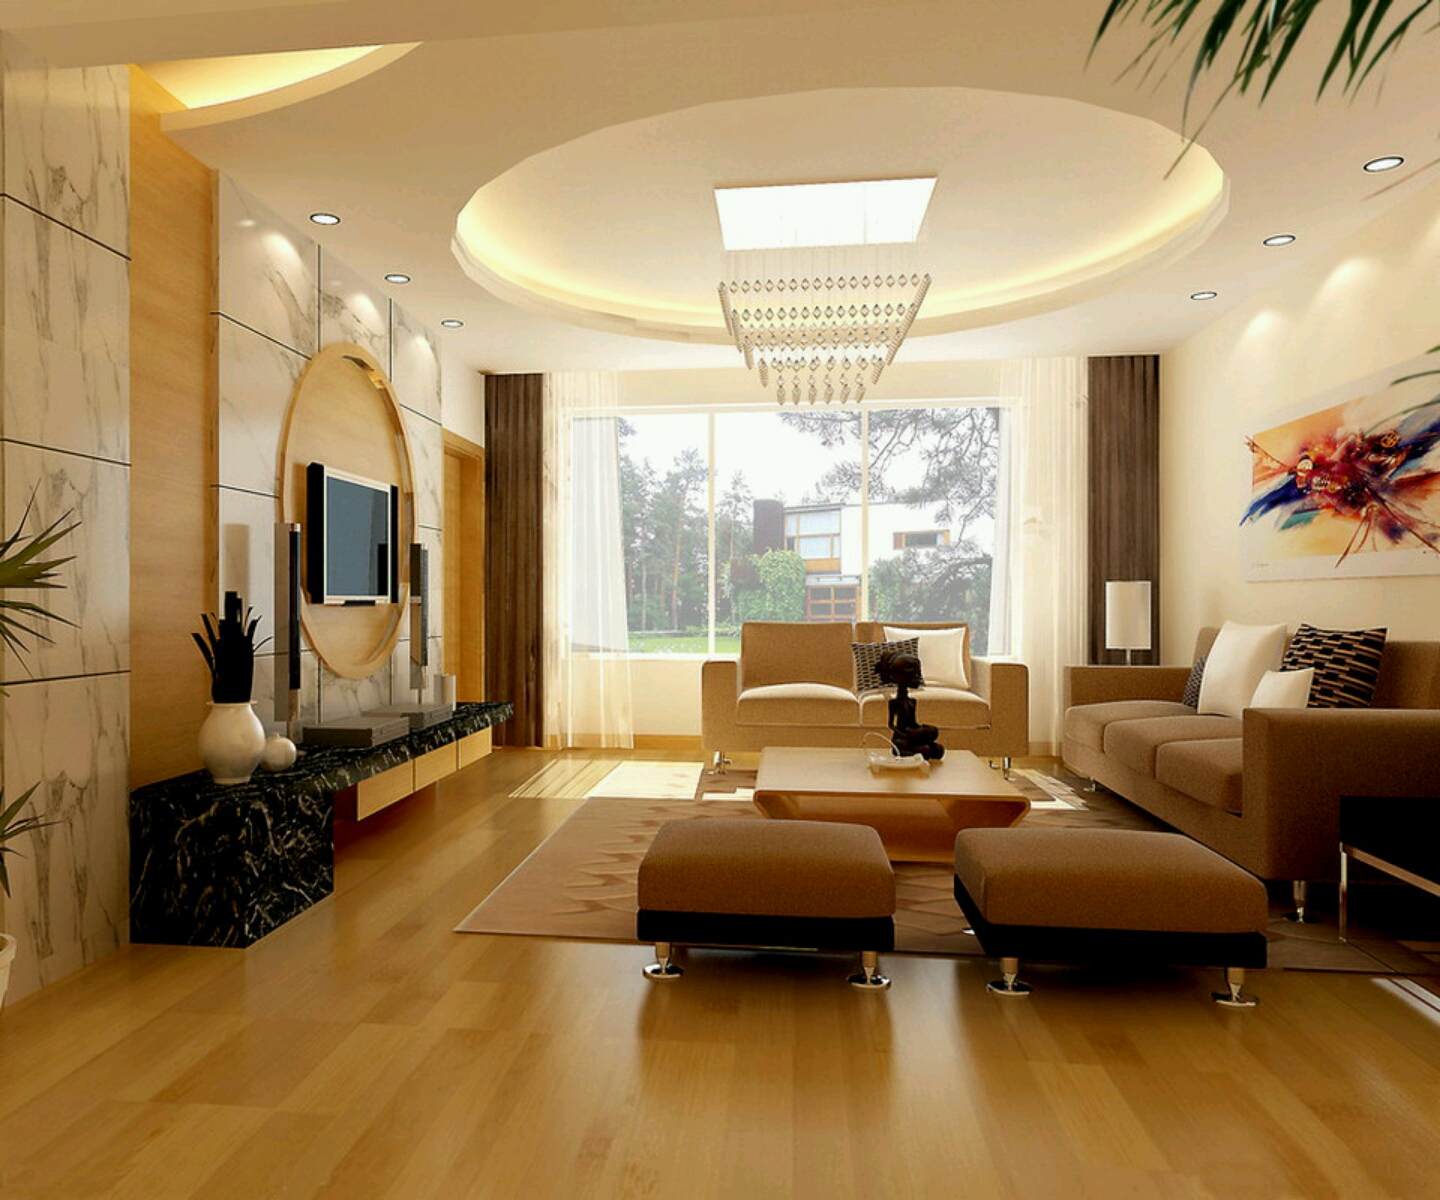 Modern interior decoration living rooms ceiling designs for House ideas living room